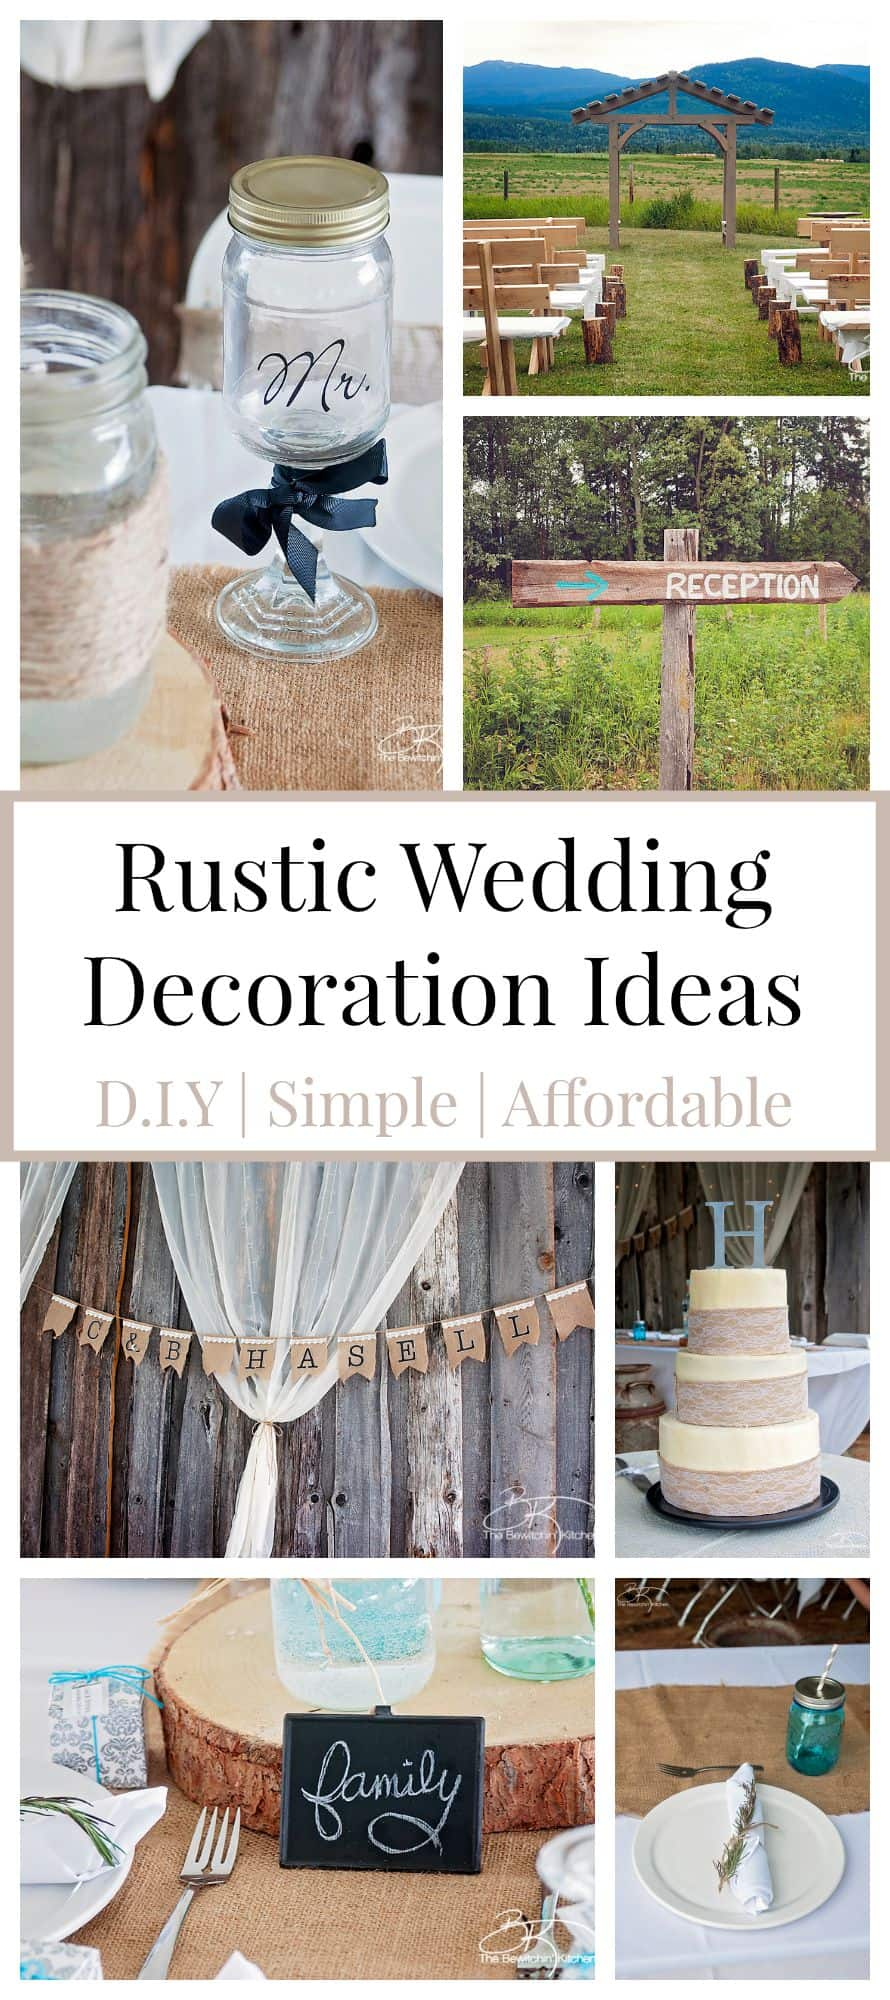 Rustic Wedding Ideas That Are DIY & Affordable | The Bewitchin\' Kitchen